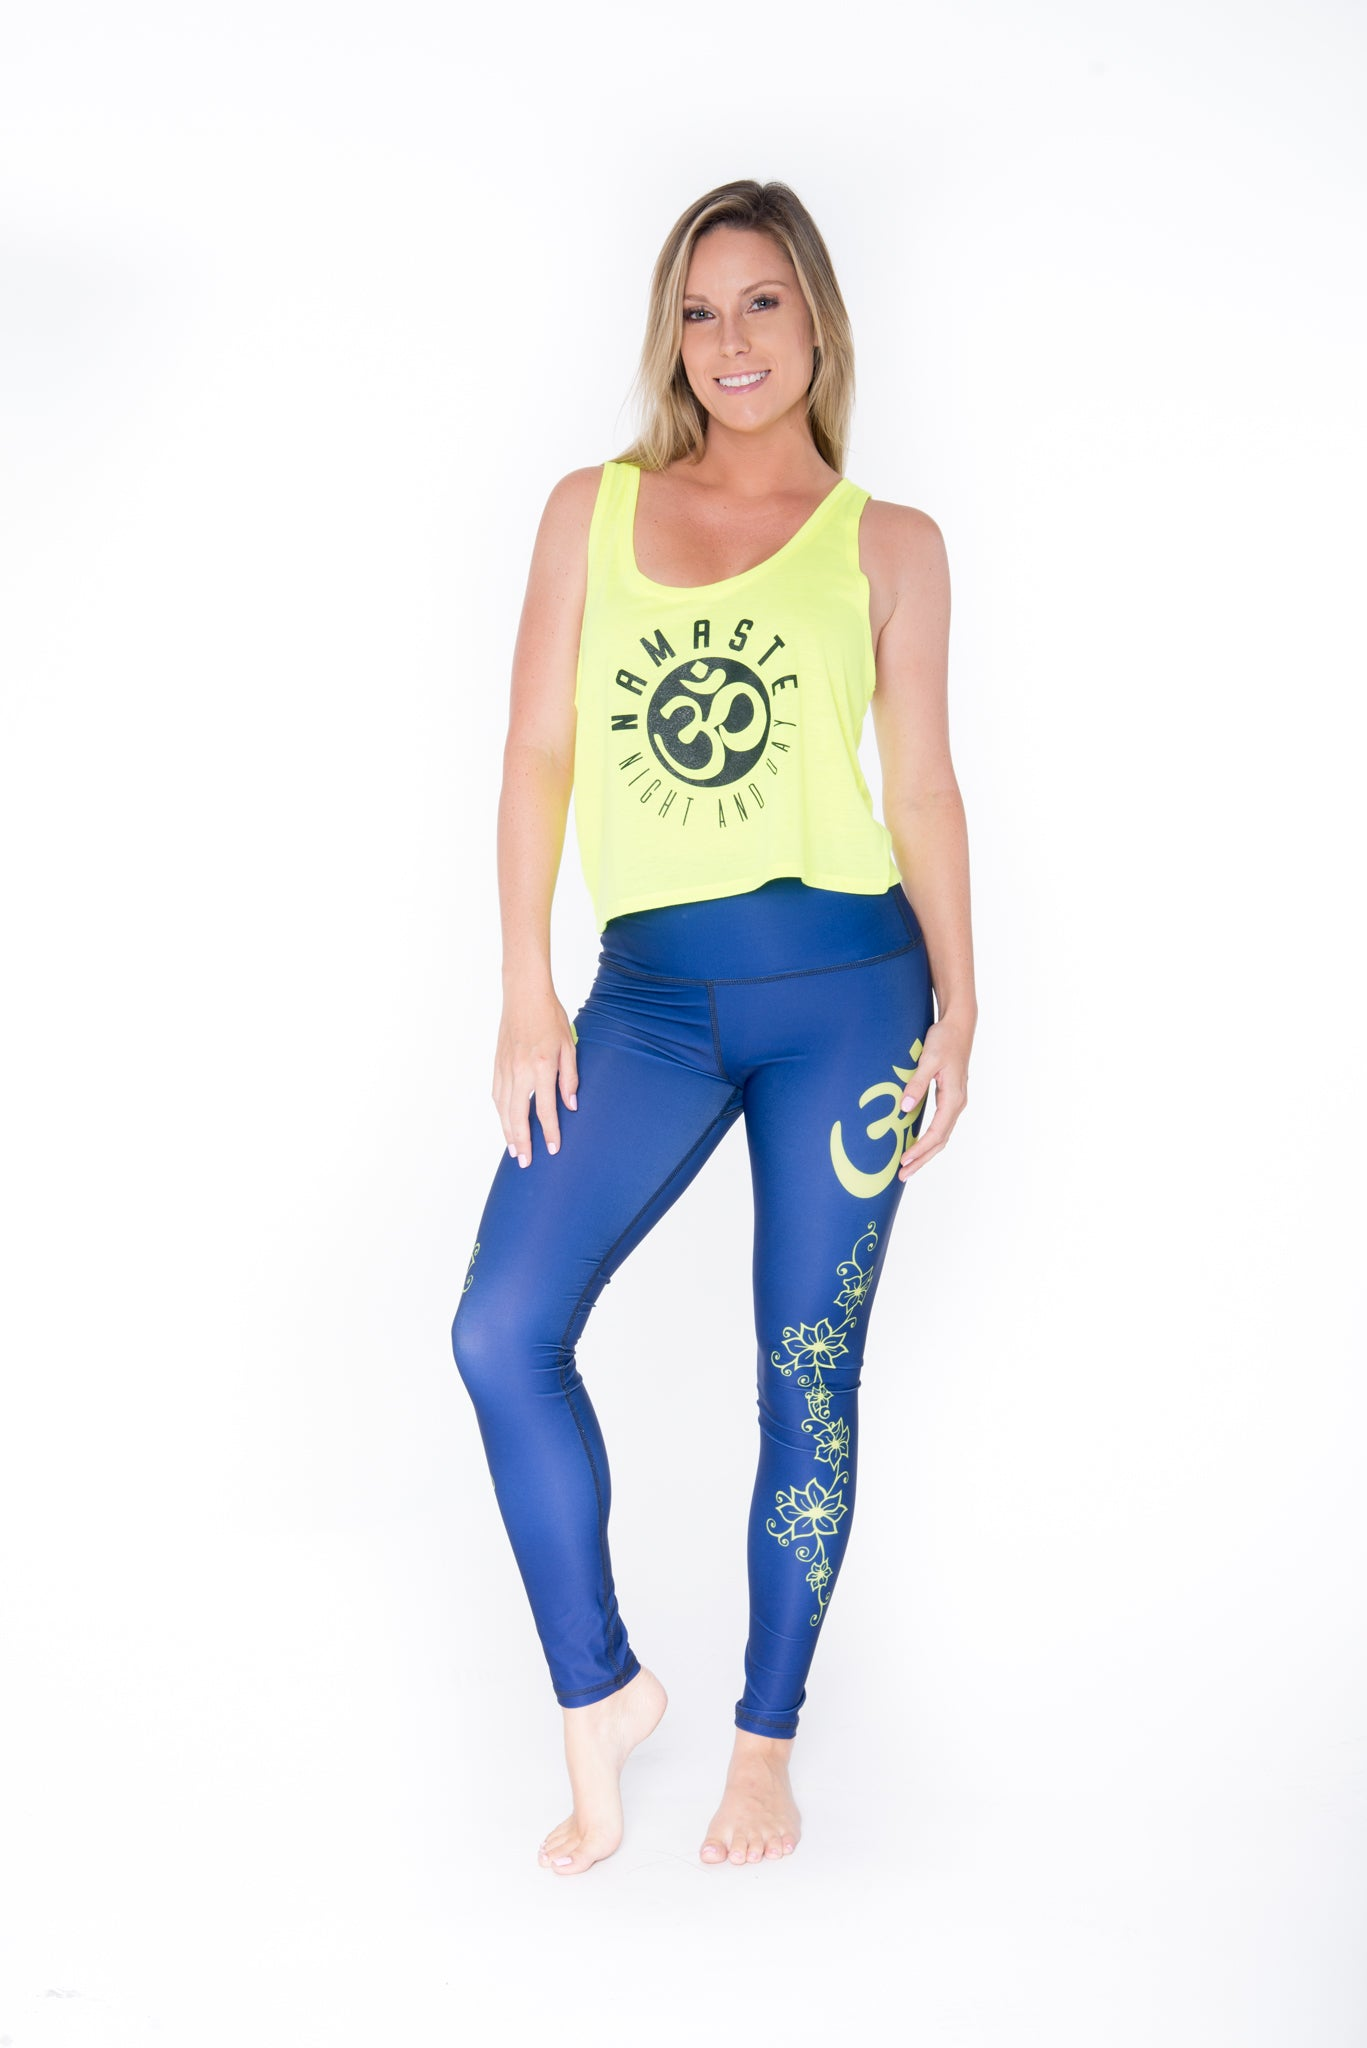 Namaste Night and Day Tank Top - Yellow